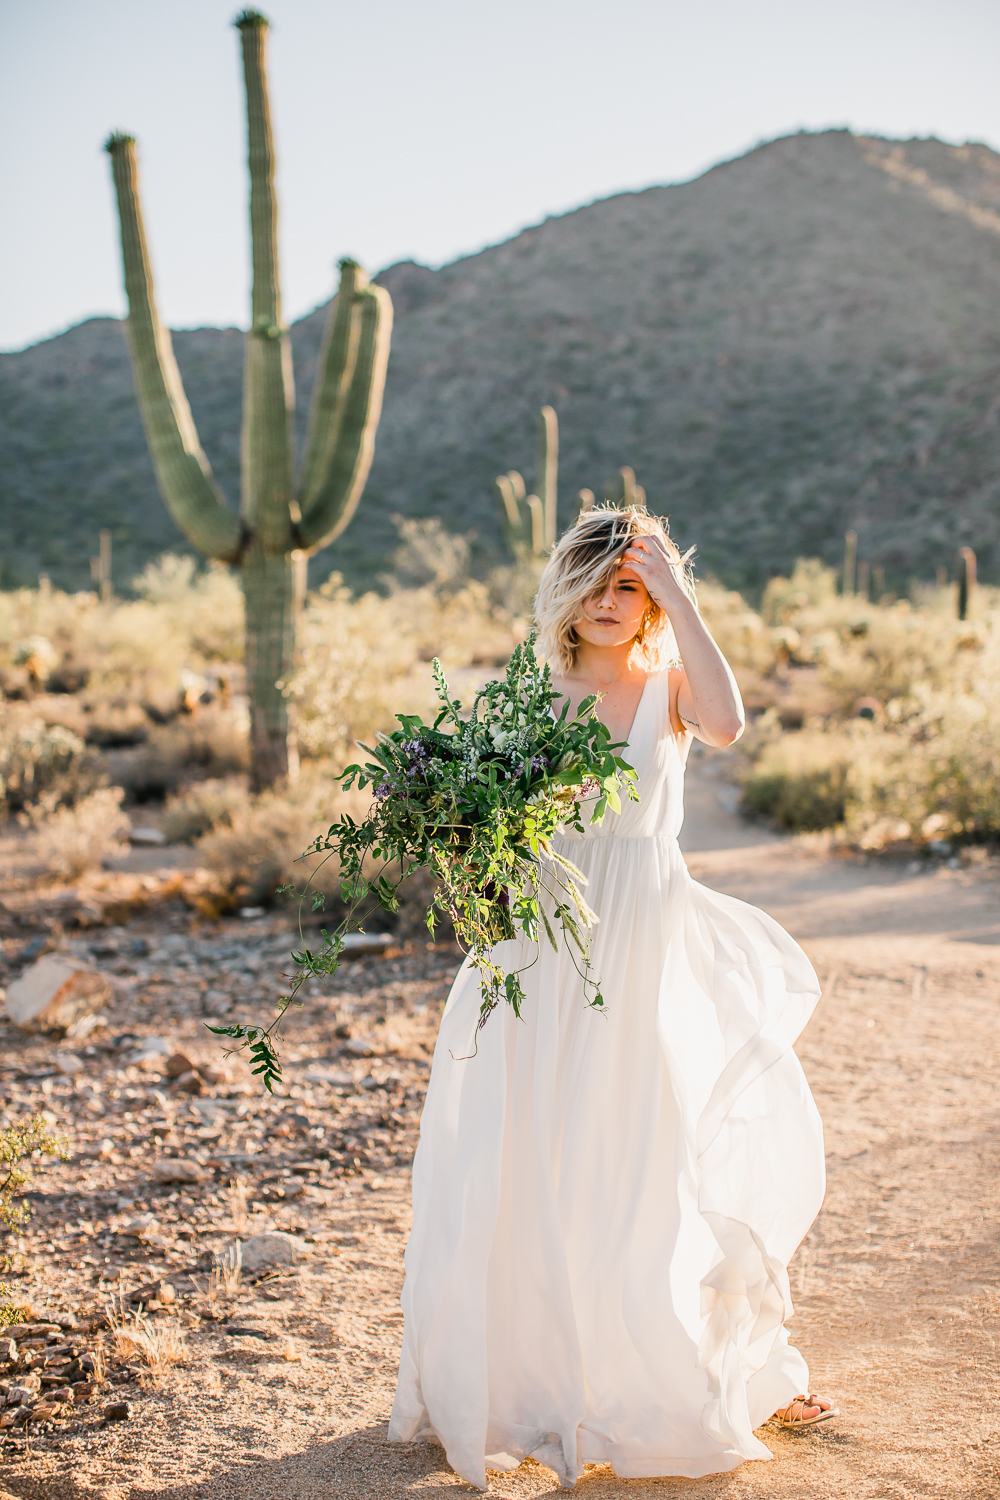 Arizona-Desert-Elopement-Emily-Kirke-Photography-5.jpg